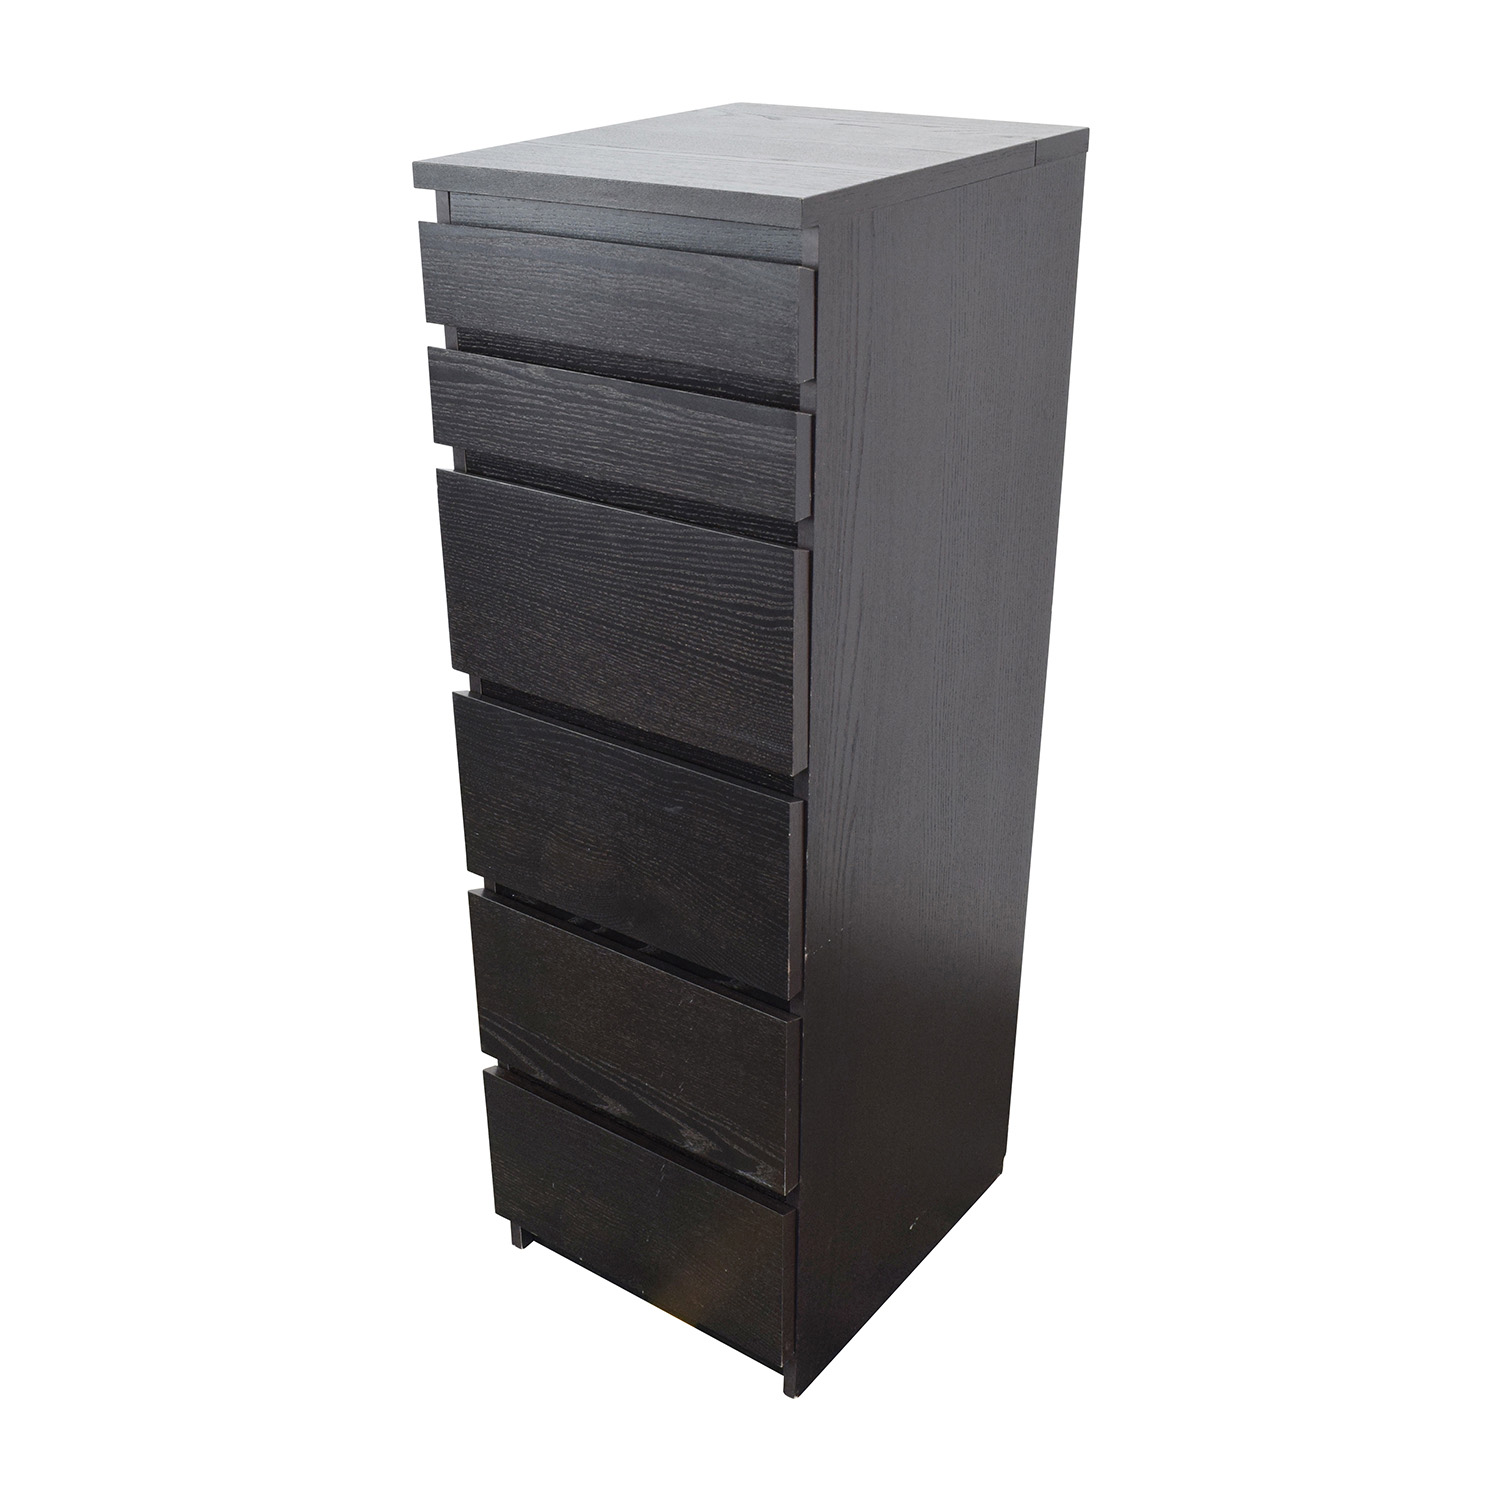 44 off ikea ikea tall narrow dark brown dresser storage. Black Bedroom Furniture Sets. Home Design Ideas